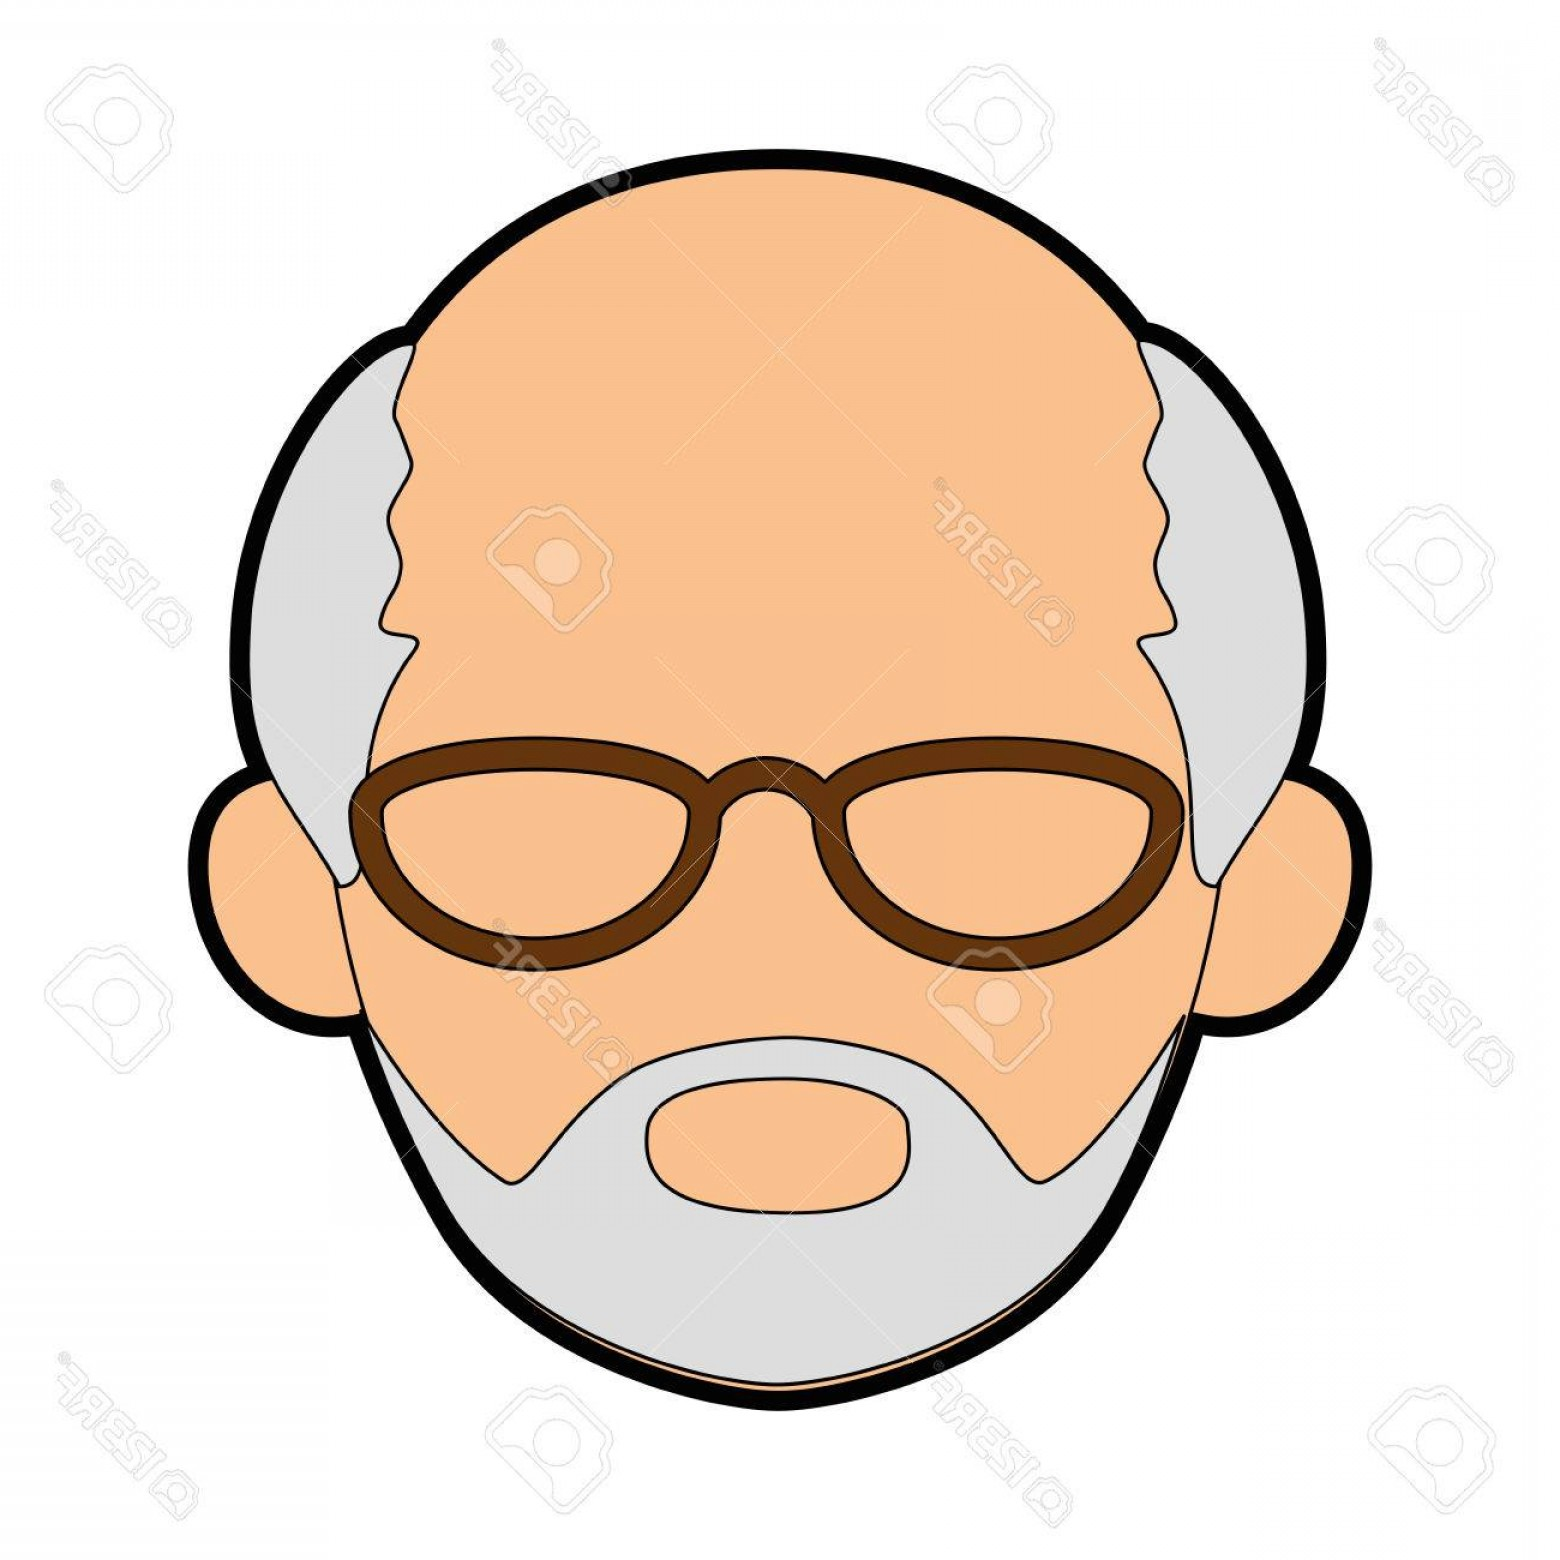 Male Face Icon Vector: Photostock Vector Isolated Old Man Face Icon Vector Illustration Graphic Design